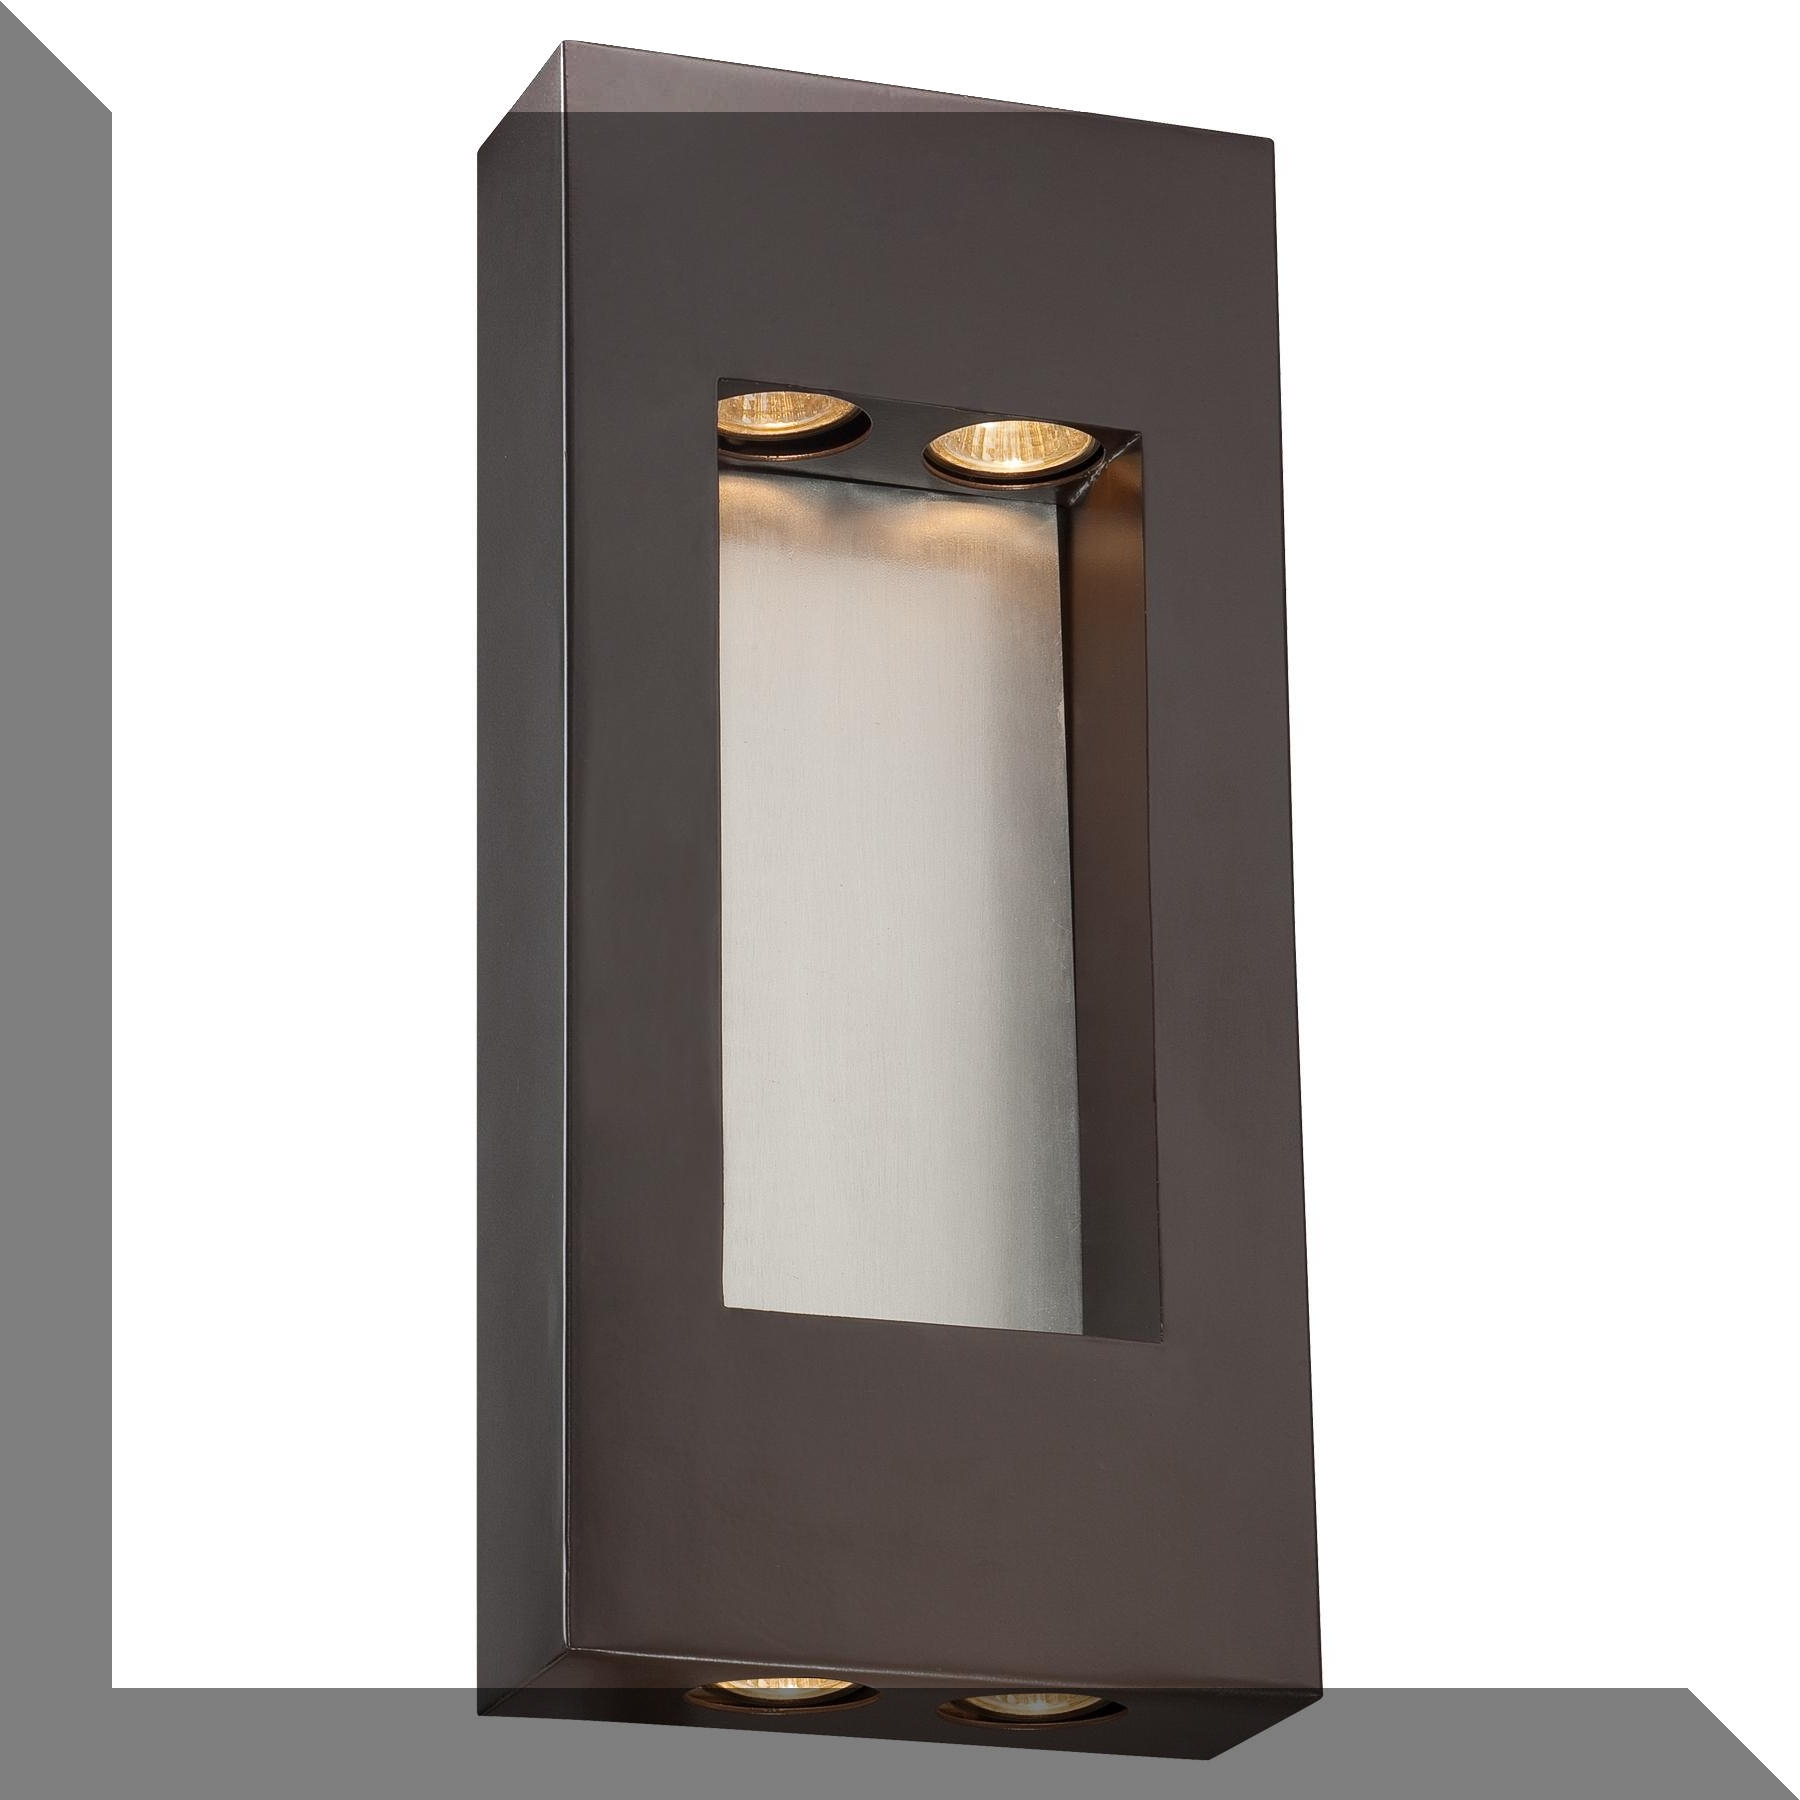 Japanese Outdoor Wall Lighting Inside Newest And Oriental Outdoor Lighting Fixtures (View 7 of 20)